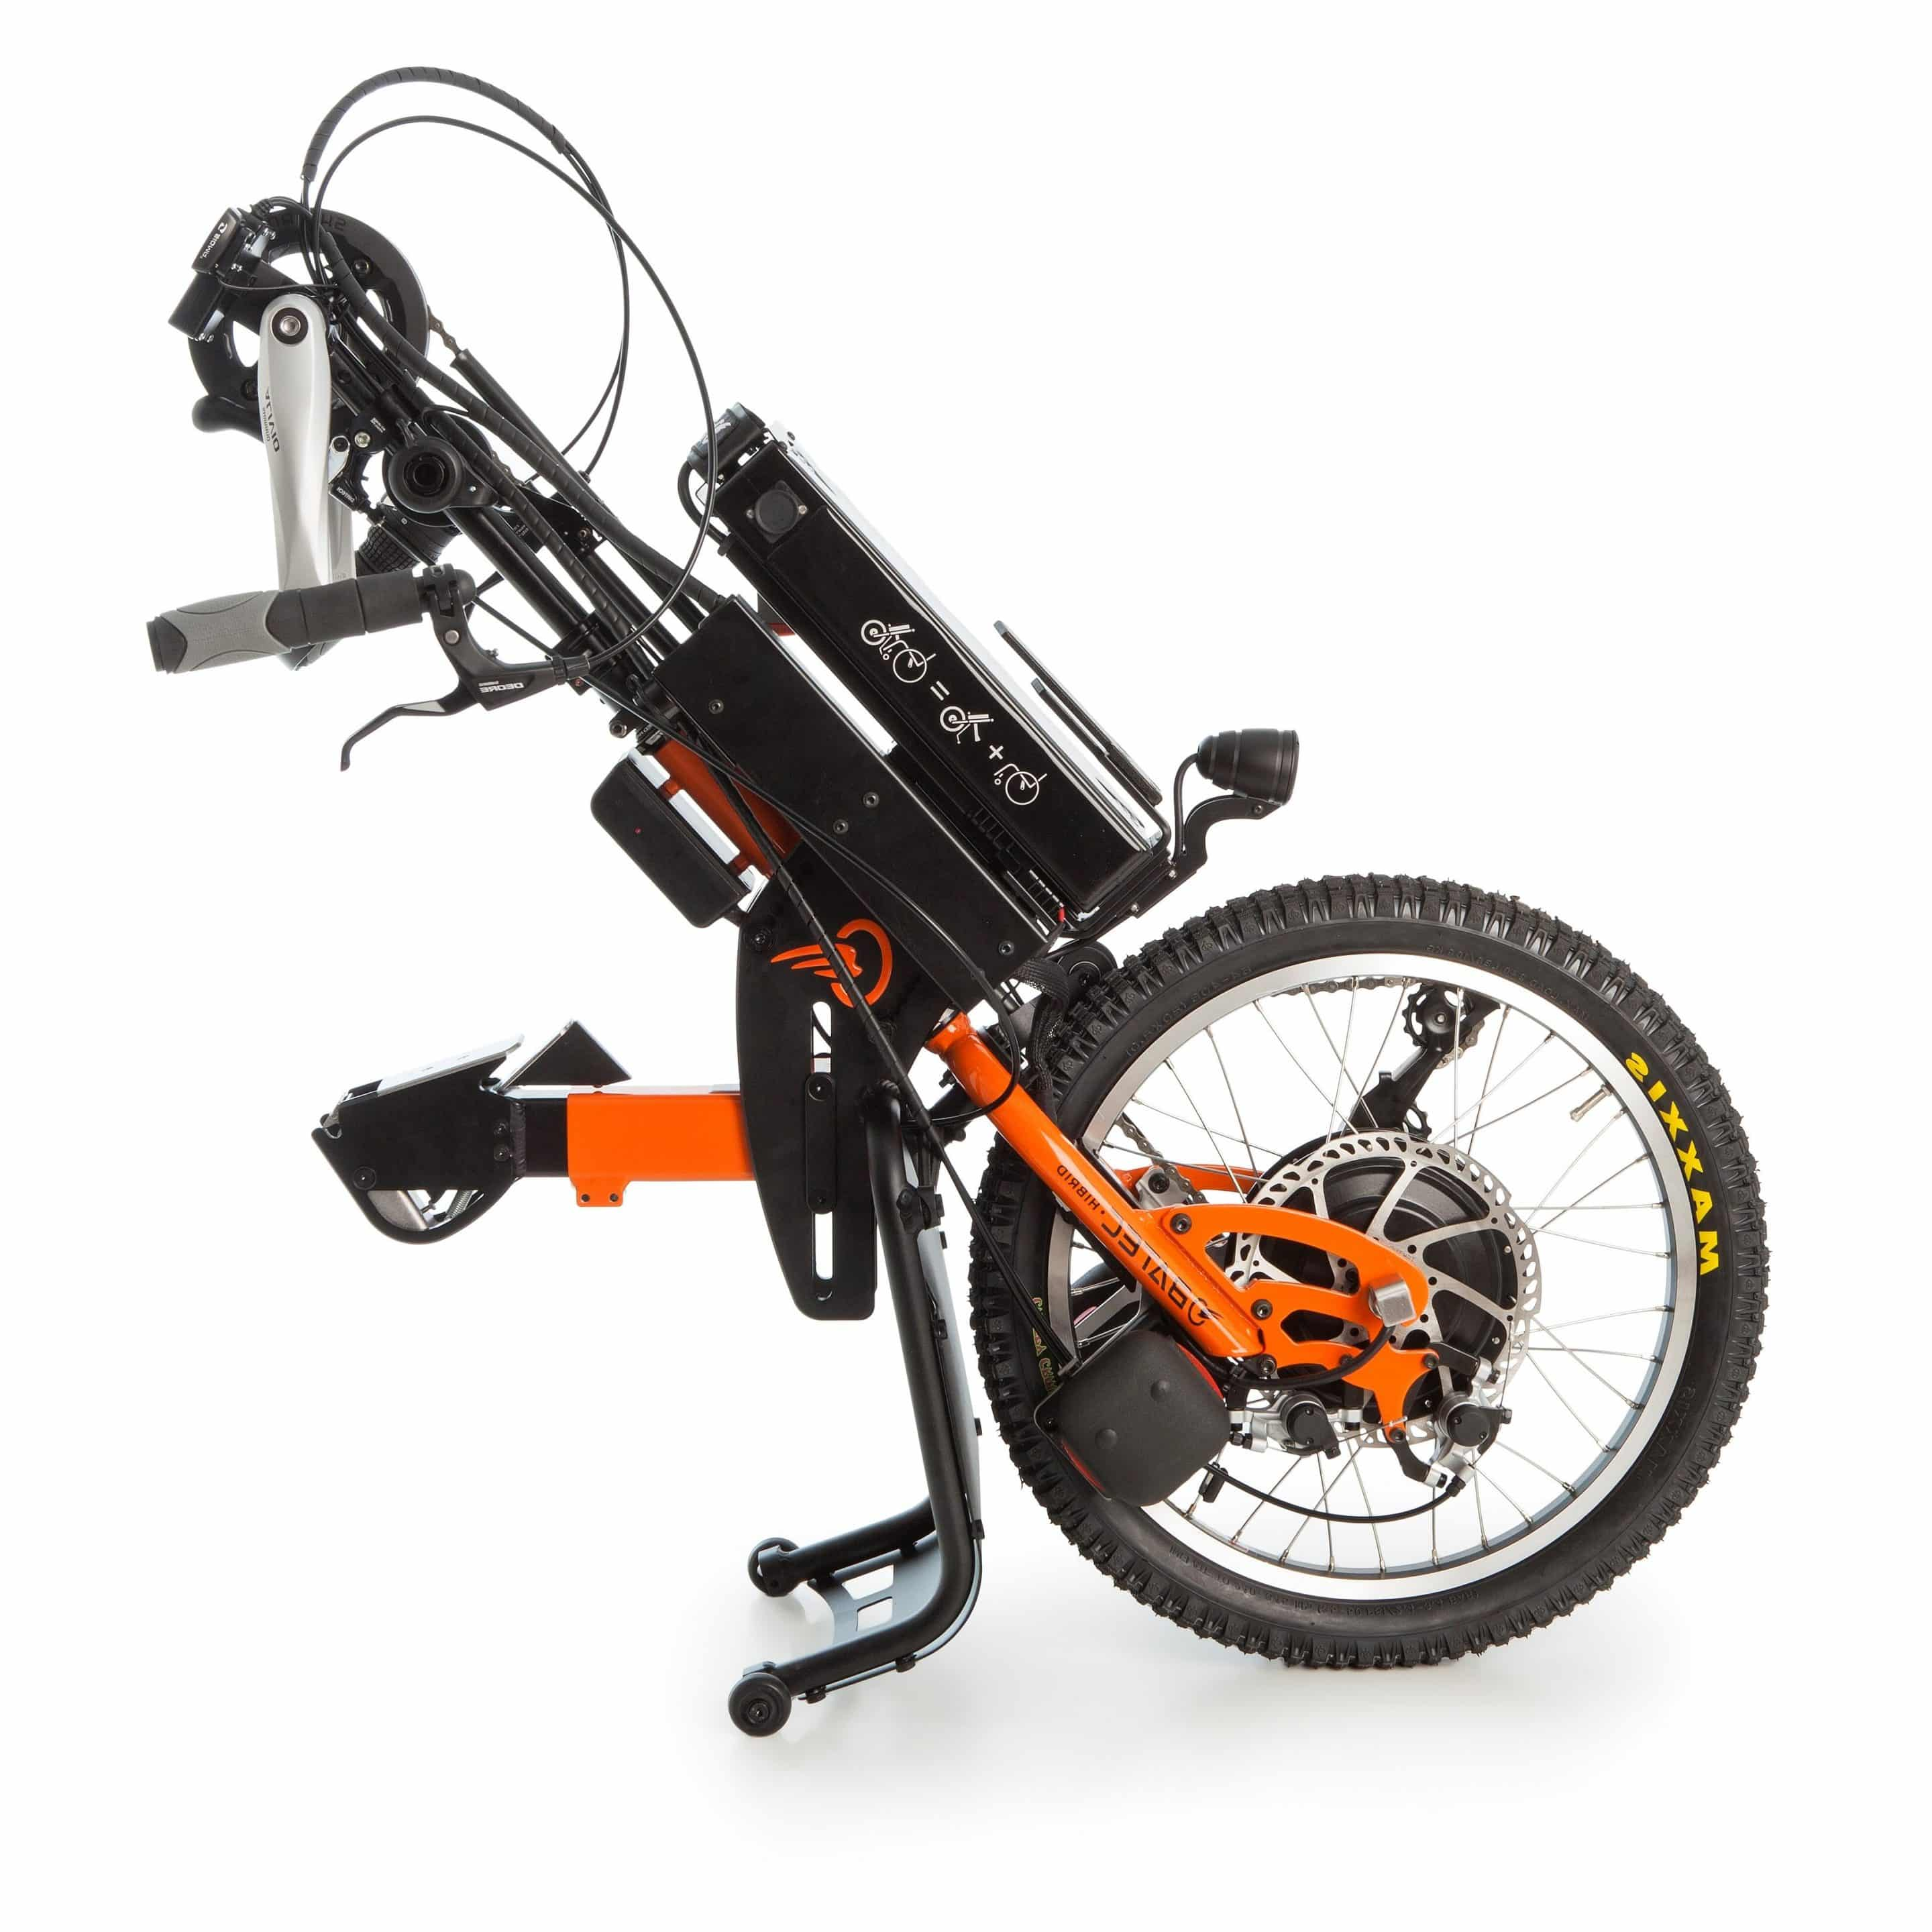 The Batec Hybrid add-on handbike, brings together the technology of the Batec Electric and the Batec Manual handbikes, to offer the equivalent of an electrically assisted bike.